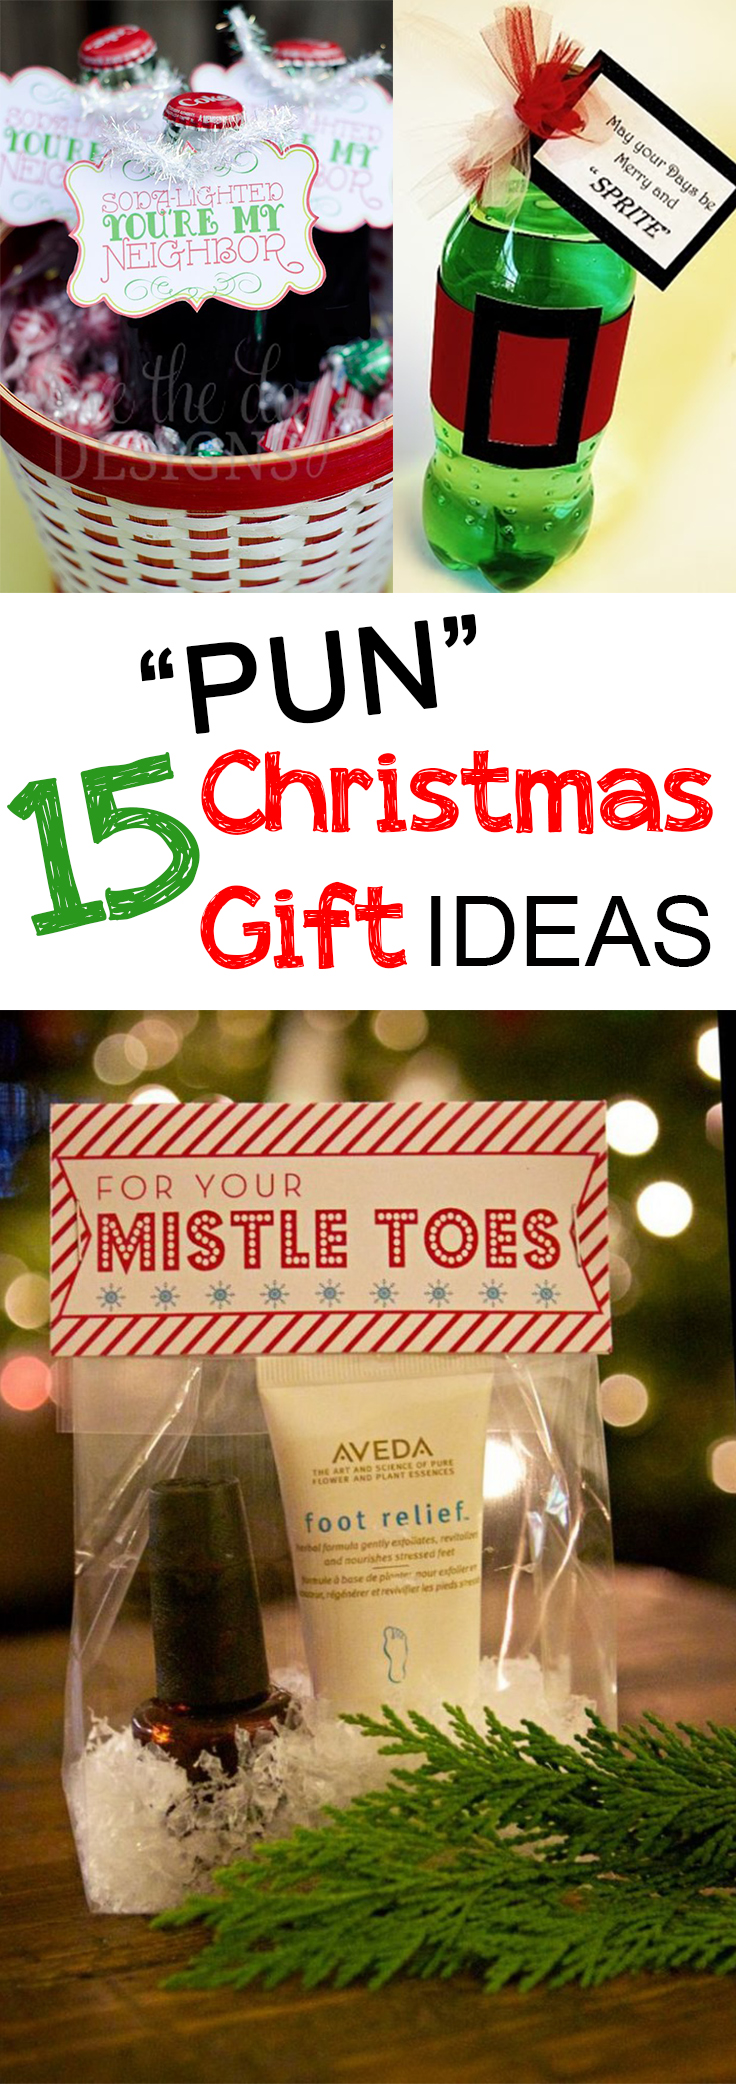 15 pun christmas gifts Easy gift ideas for friends for christmas